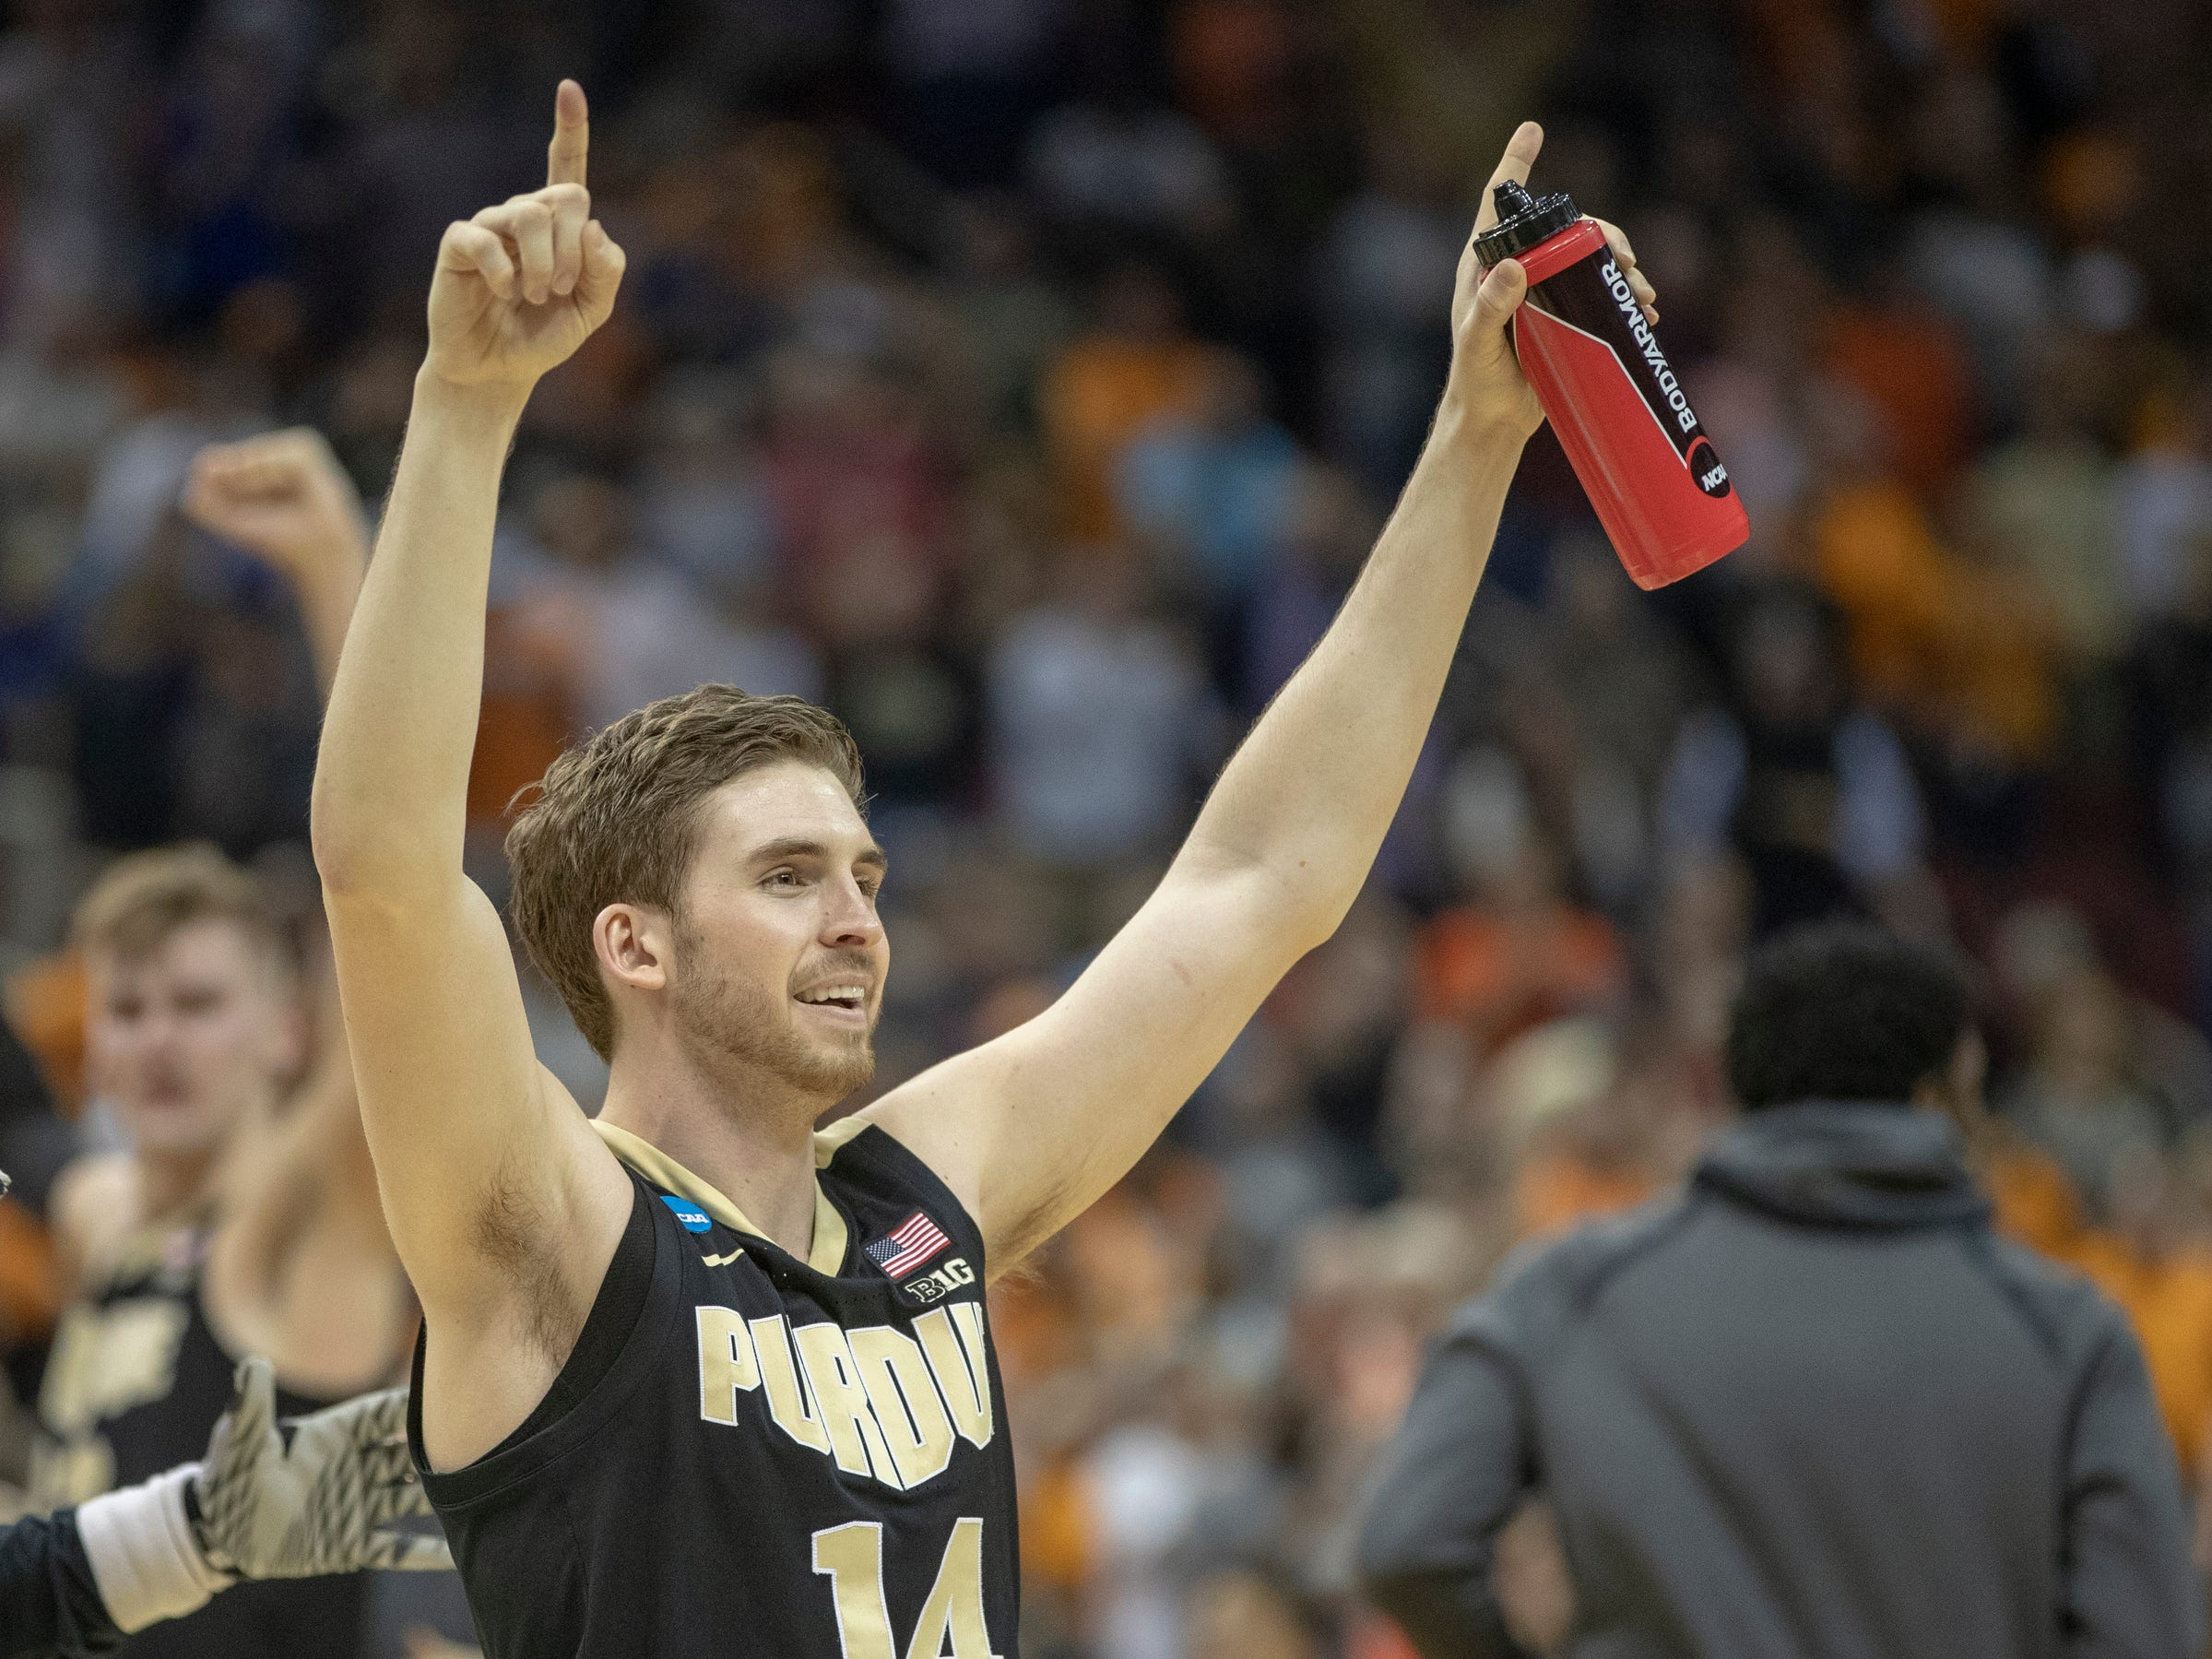 Ryan Cline of the Purdue Boilermakers cheers after their victory over Tennessee, NCAA Division 1 Men's Basketball 'Sweet Sixteen' game, KFC Yum Center, Louisville, Thursday, March 28, 2019. Purdue beat Tennessee 99-94.